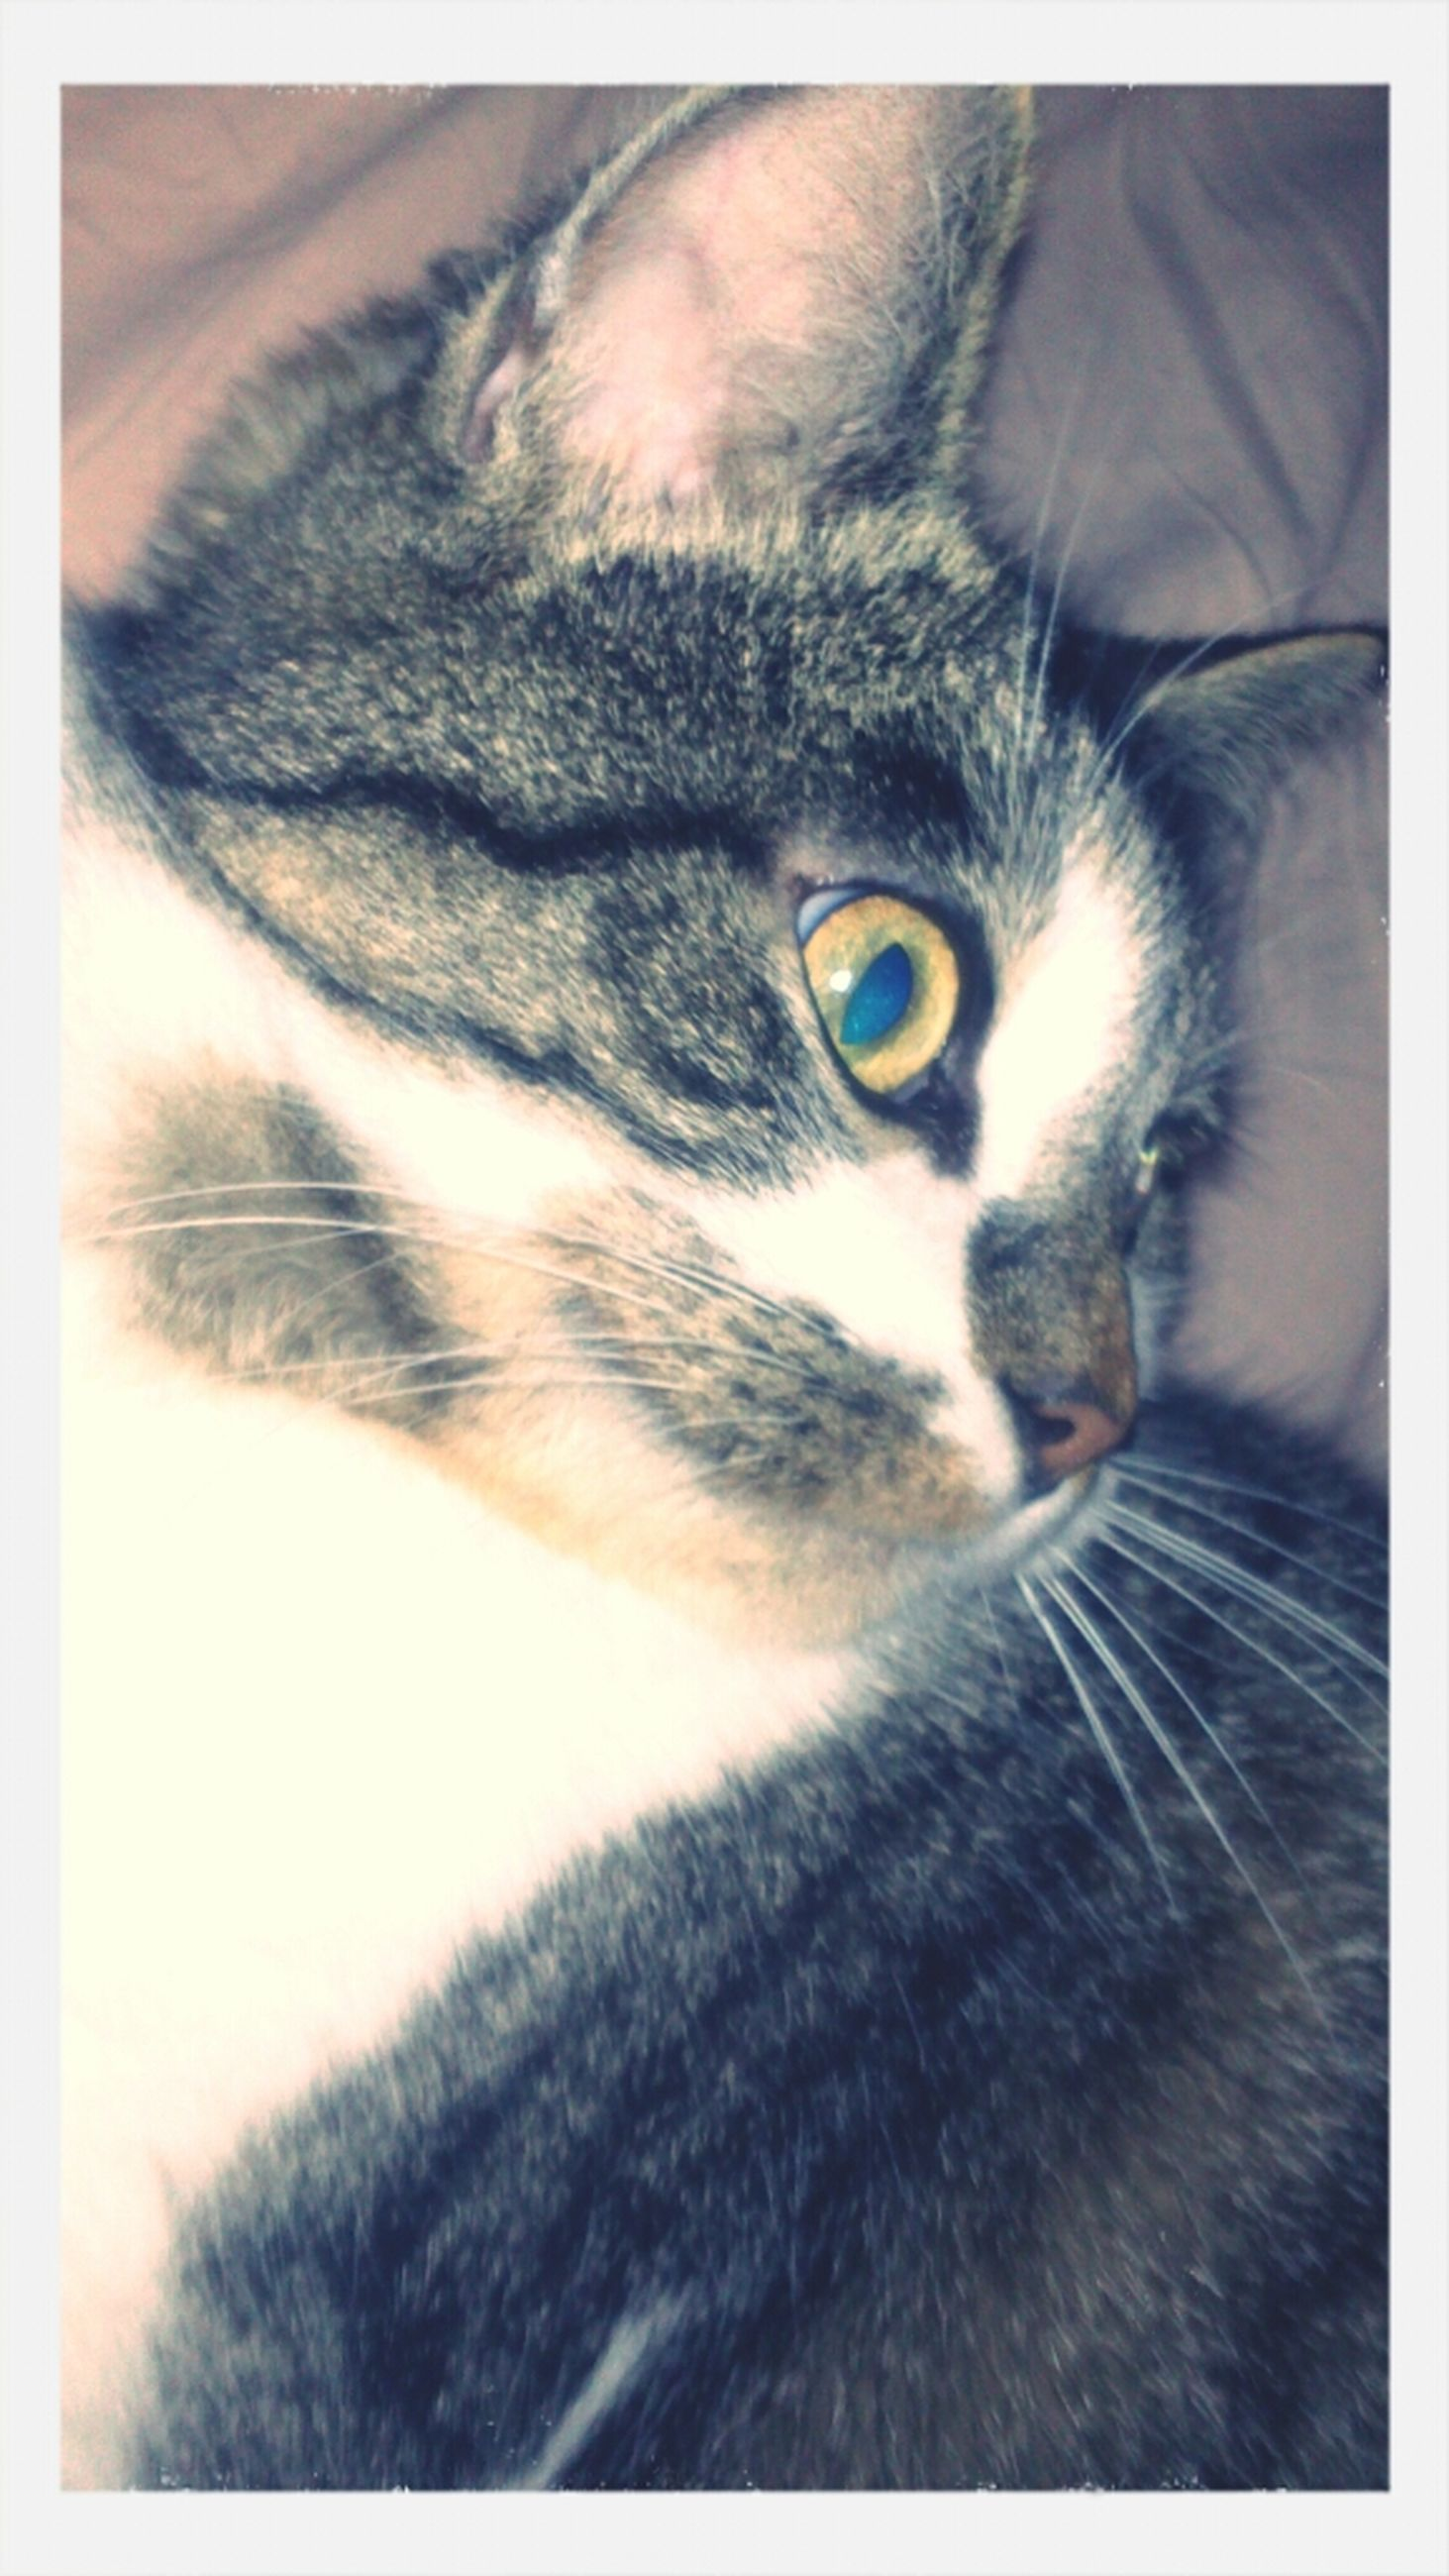 pets, one animal, domestic animals, domestic cat, animal themes, cat, mammal, feline, whisker, indoors, transfer print, auto post production filter, animal head, portrait, relaxation, close-up, looking at camera, staring, animal eye, alertness